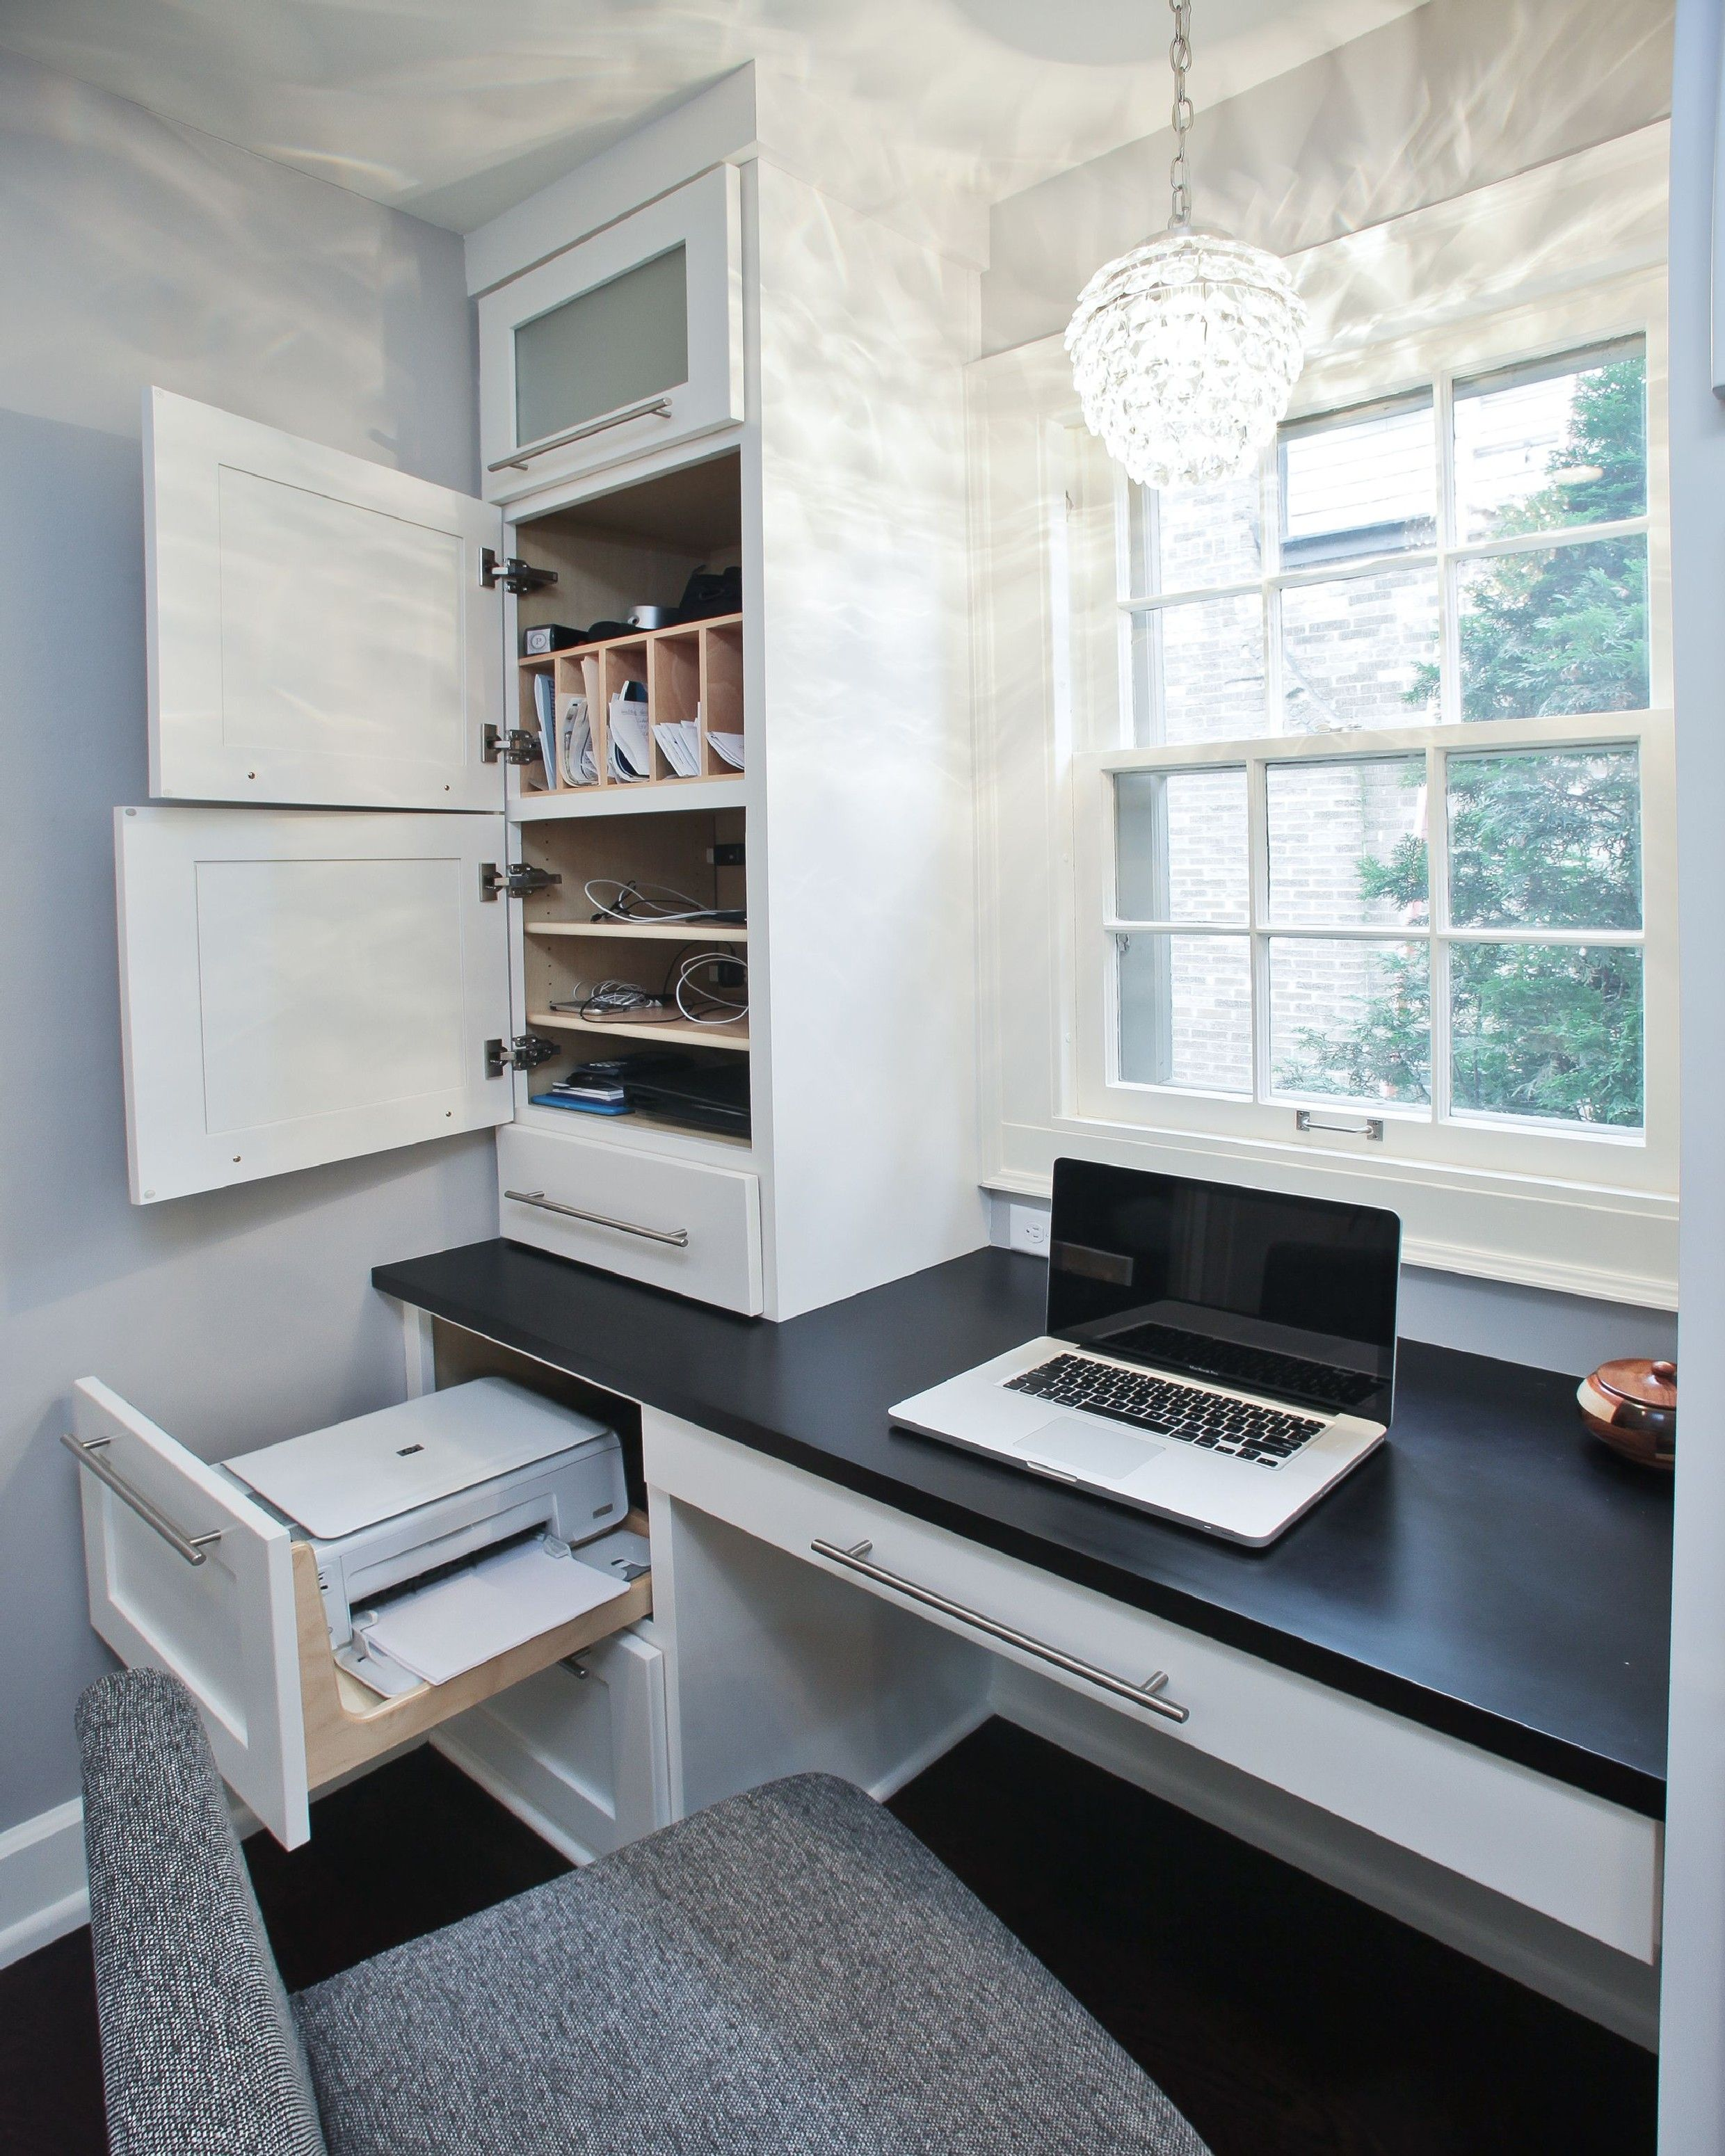 Best 24 Home Office Built In Cabinet Design Ideas to Maximize Small Space #garageideasstorage